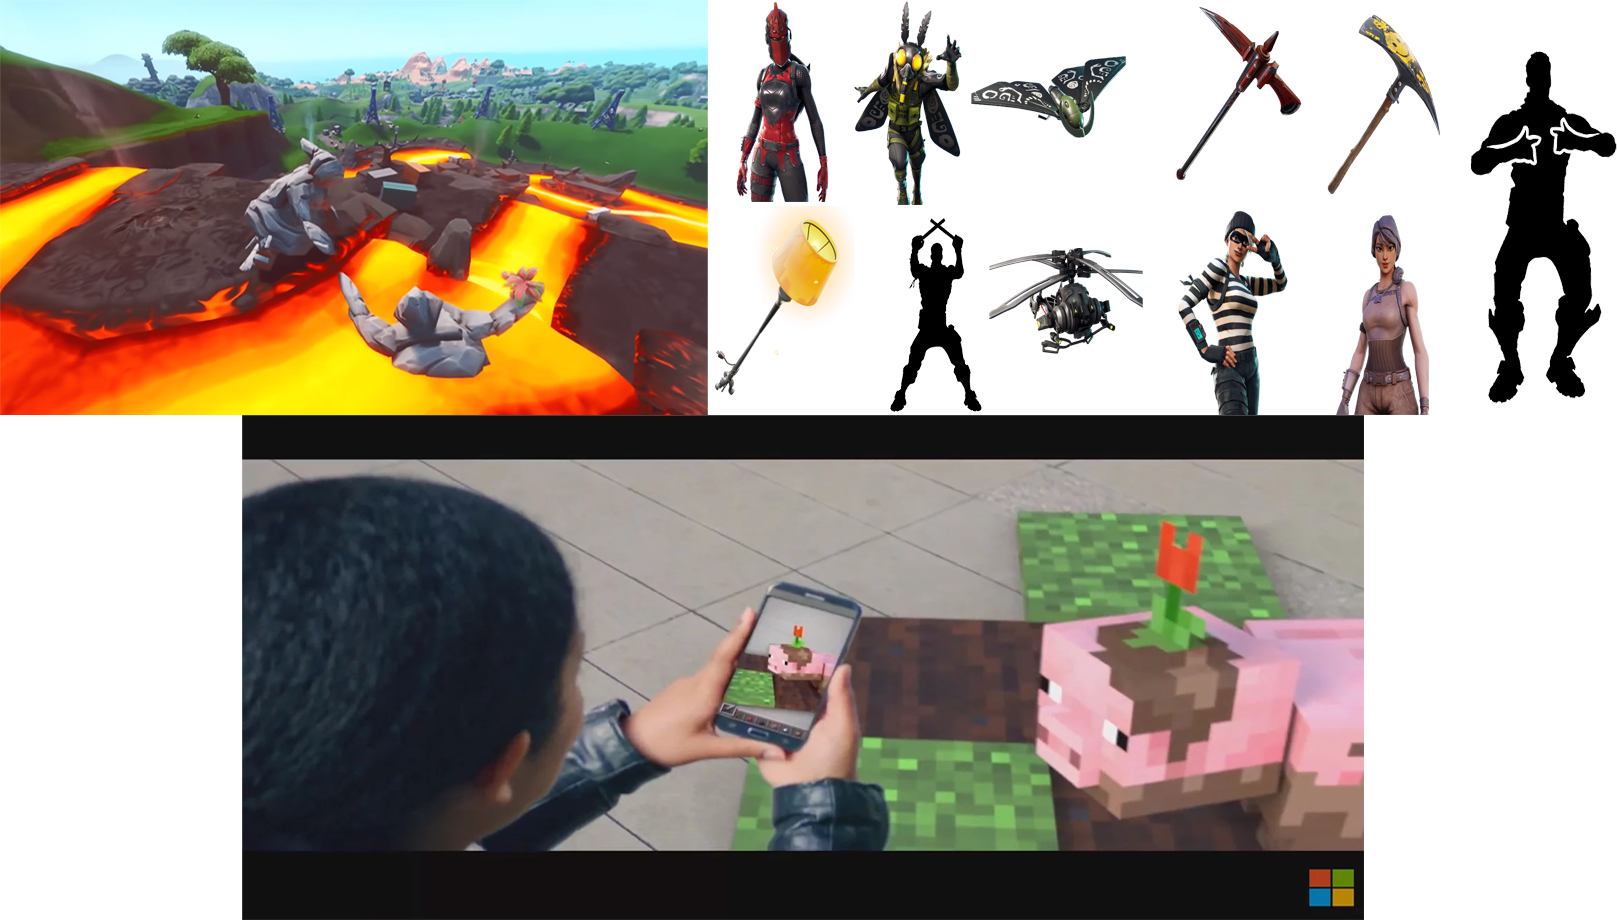 Android Games Update: Fortnite map and item update, Minecraft mobile AR gaming